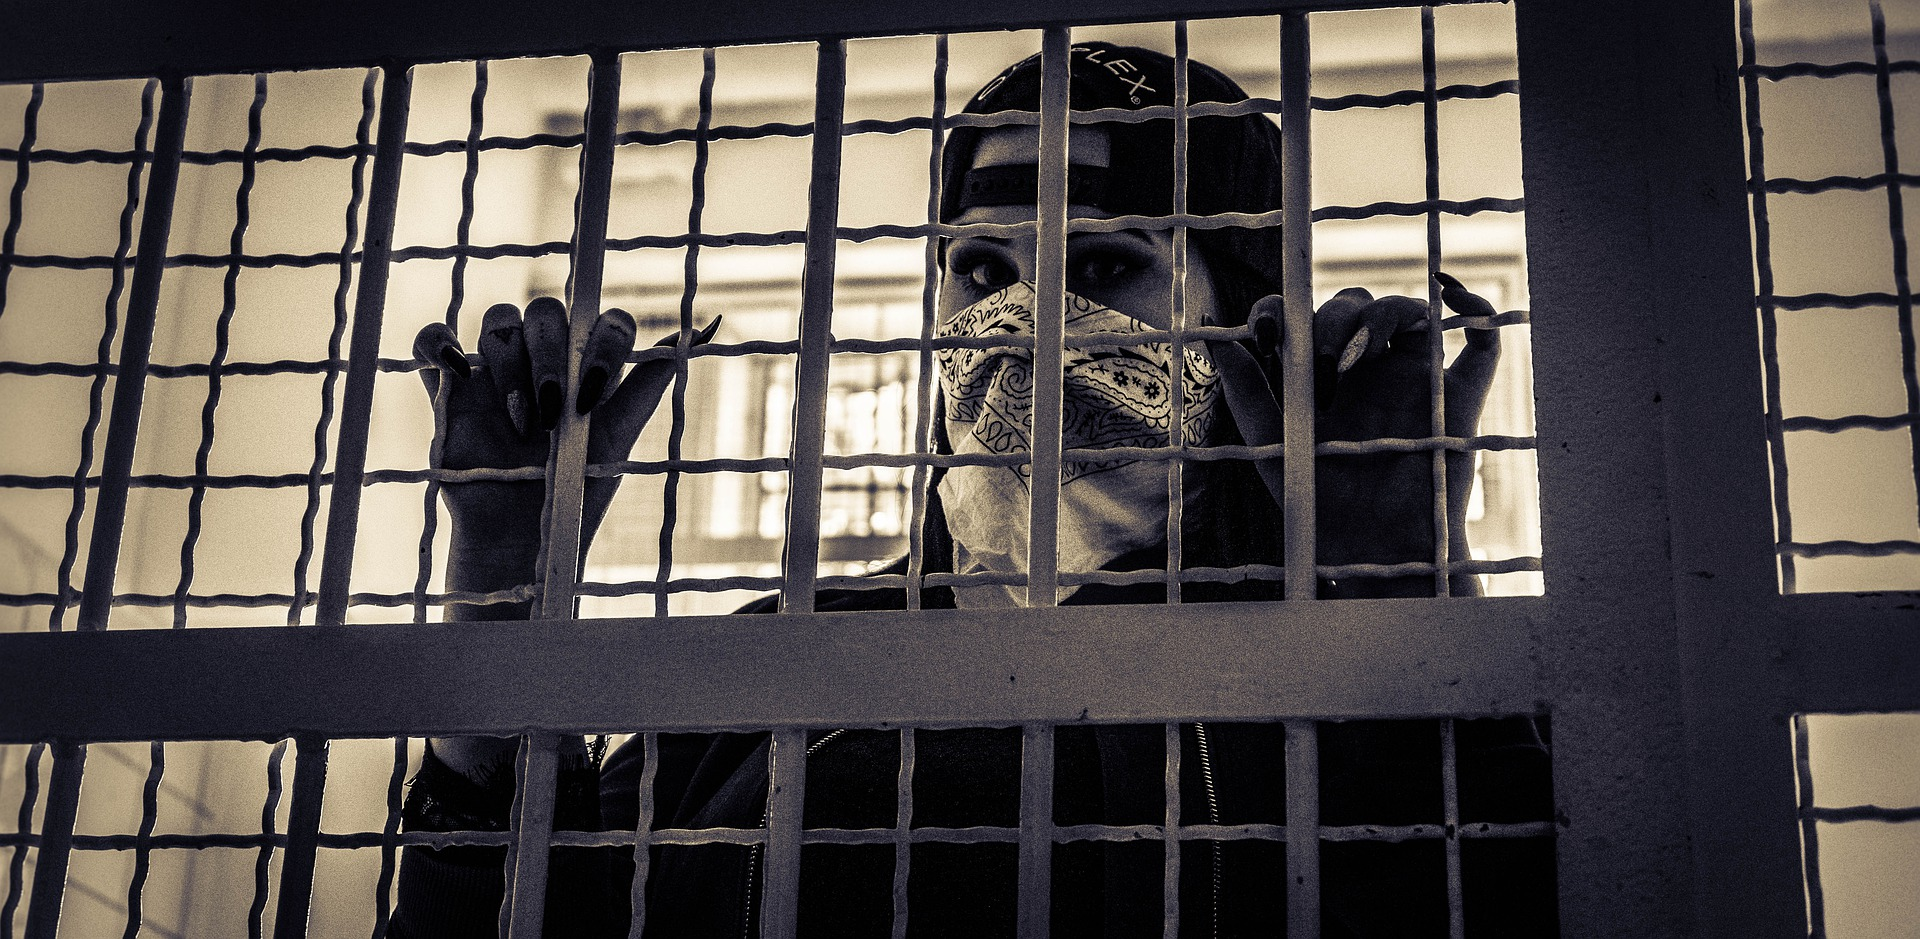 A woman behind bars in jail.